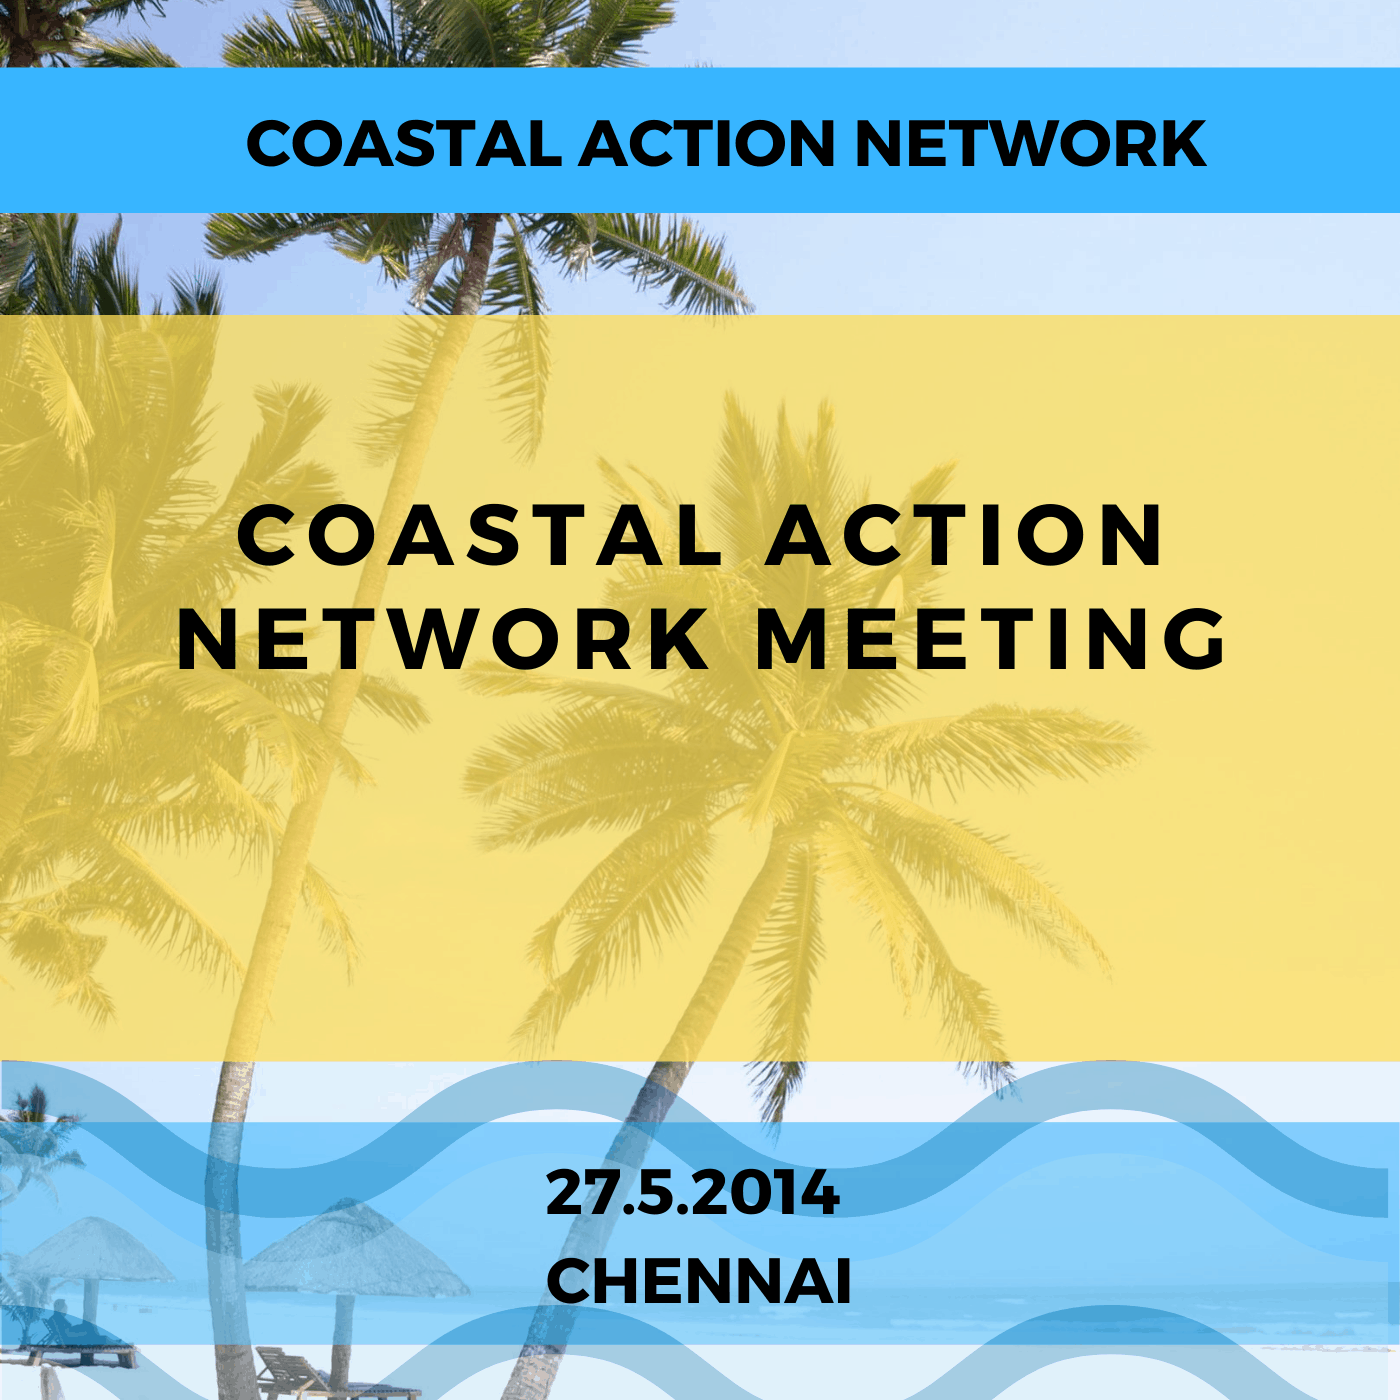 Coastal Action Network Meeting